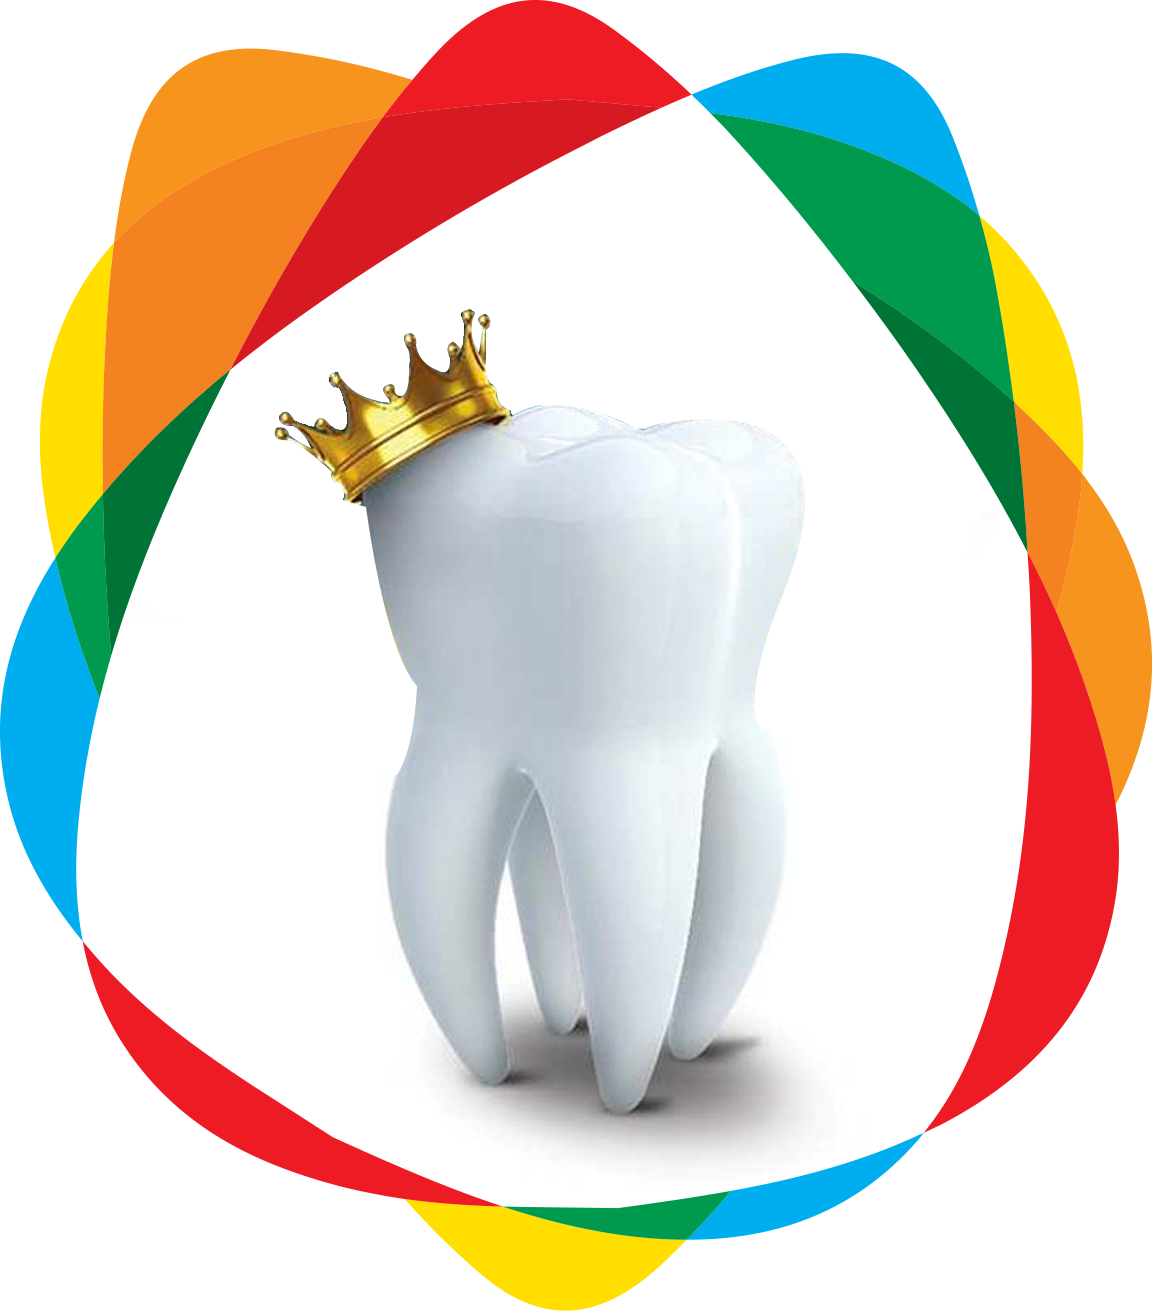 Tooth clipart crown graphic royalty free stock Dental Crowns | Ideal Smile graphic royalty free stock